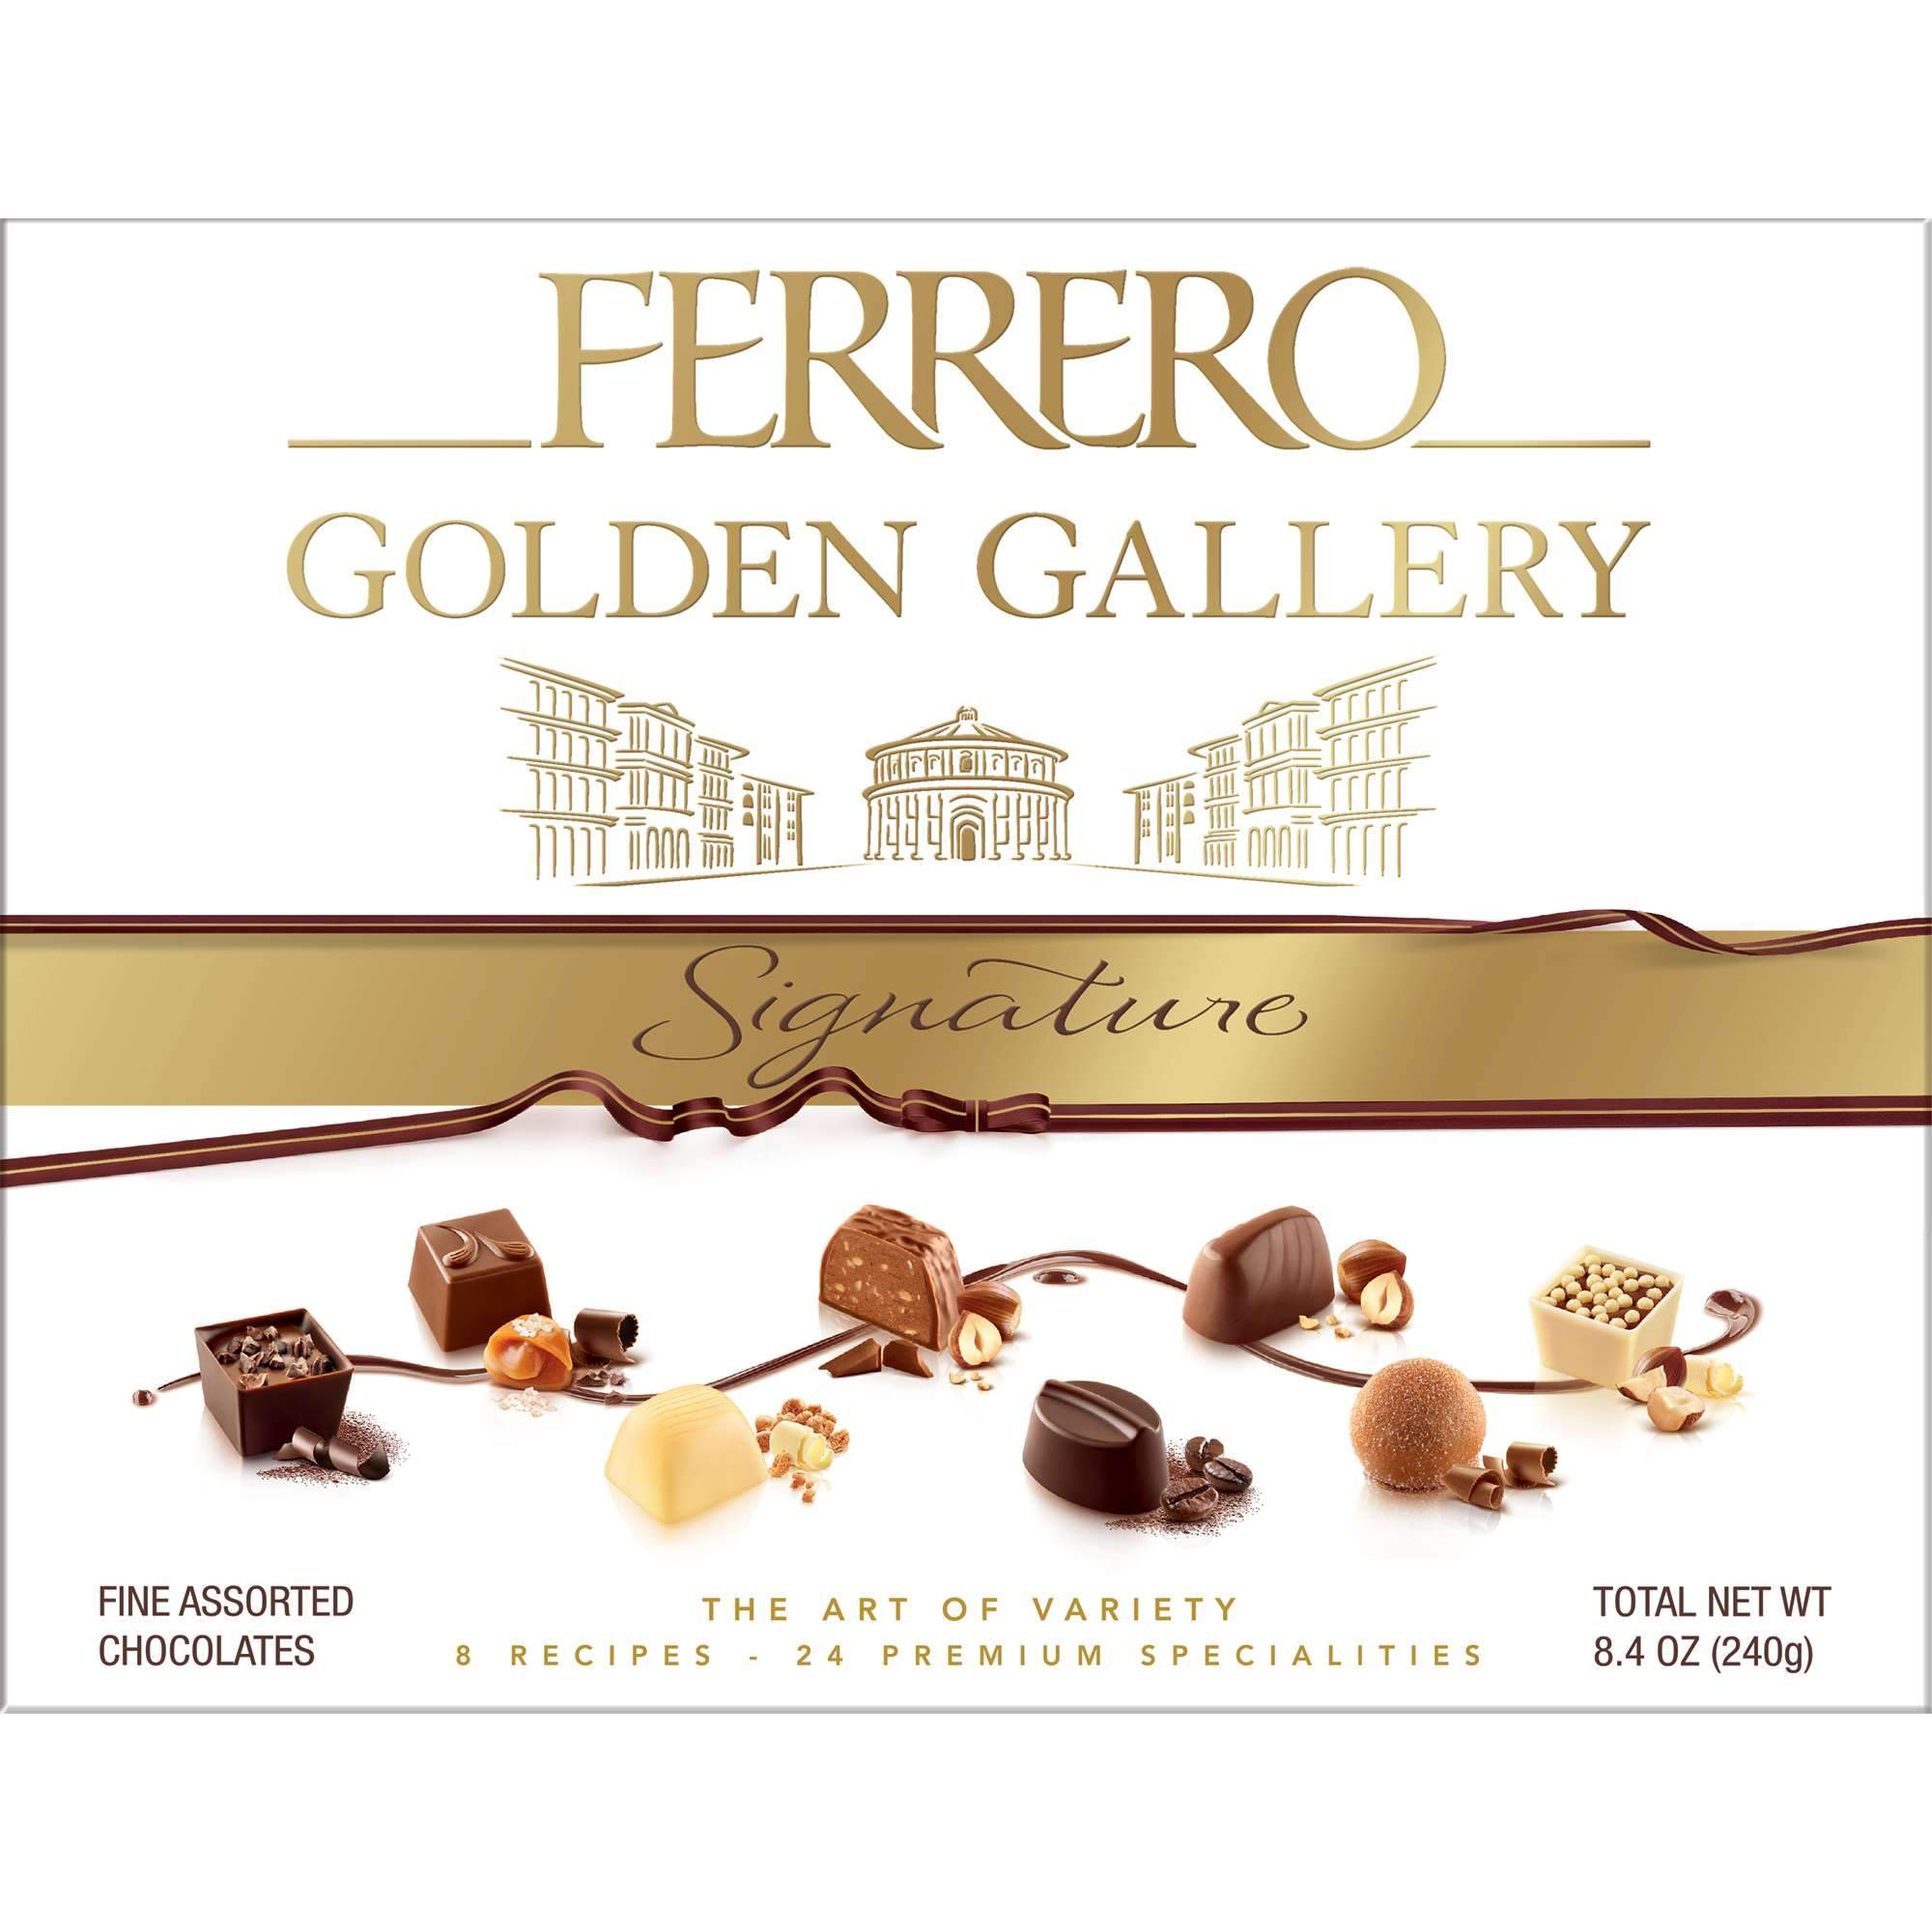 Ferrerro Golden Gallery Signature Fine Assorted Chocolates Meltable Ferrero 4.2 Ounce